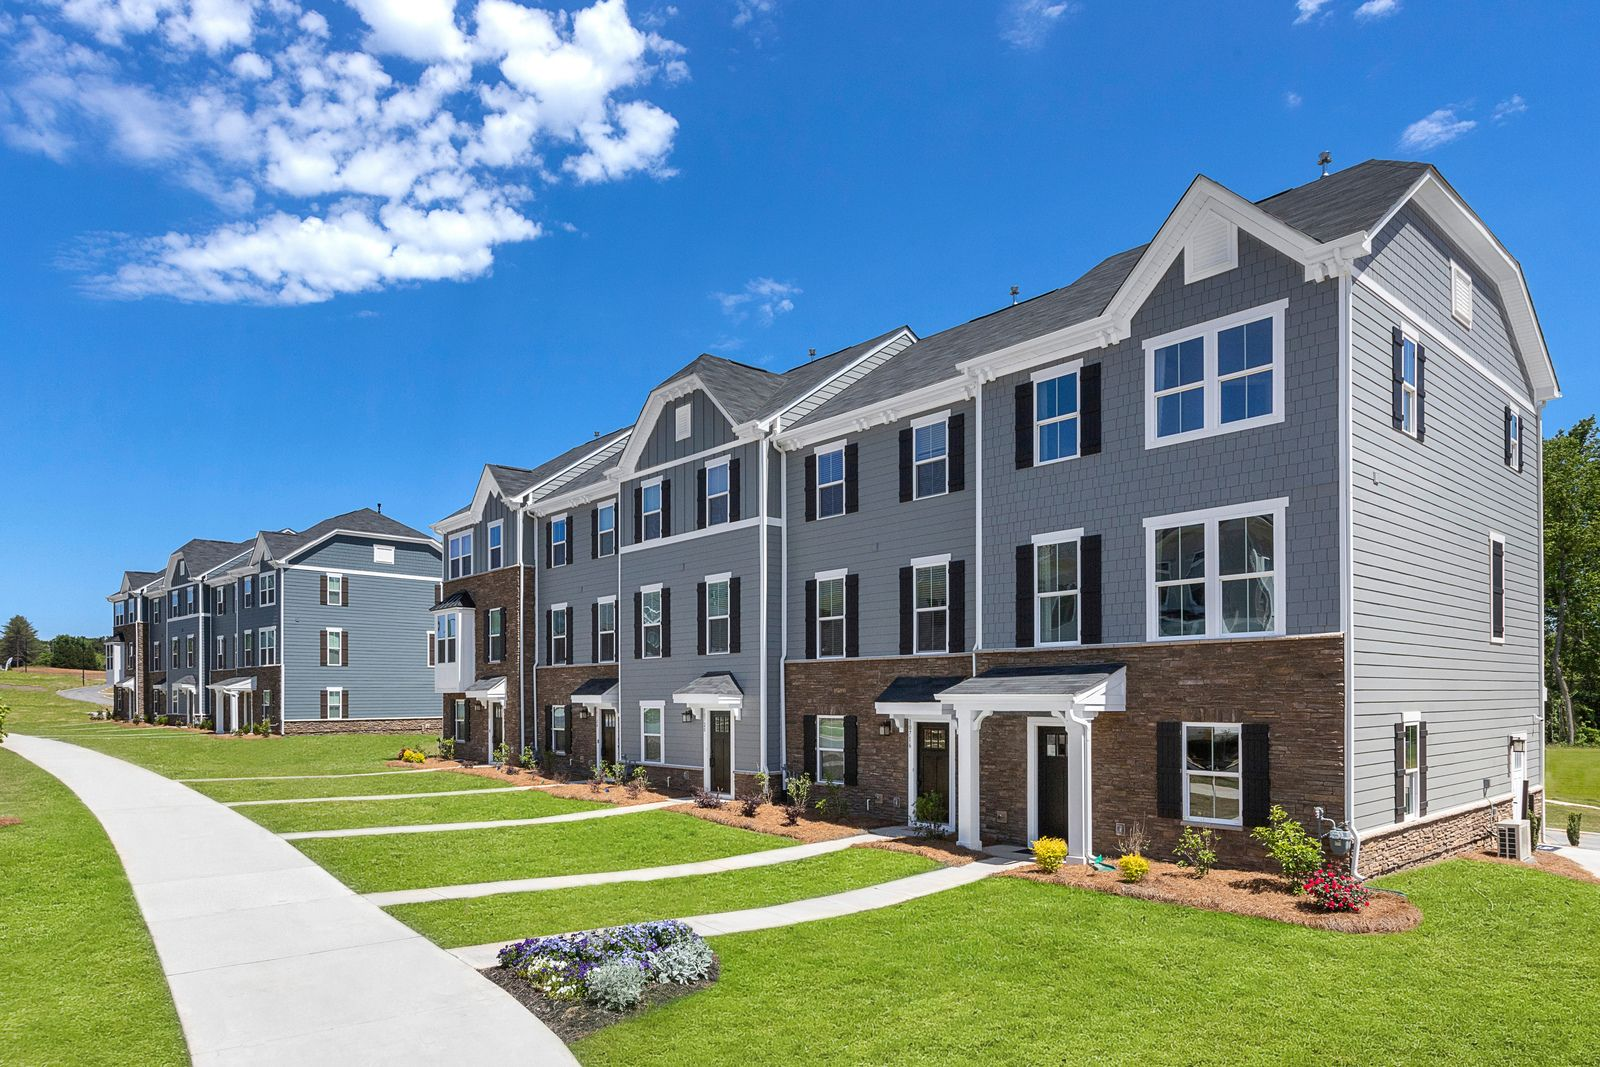 Own a new townhome minutes to Uptown and close to I-485 &16